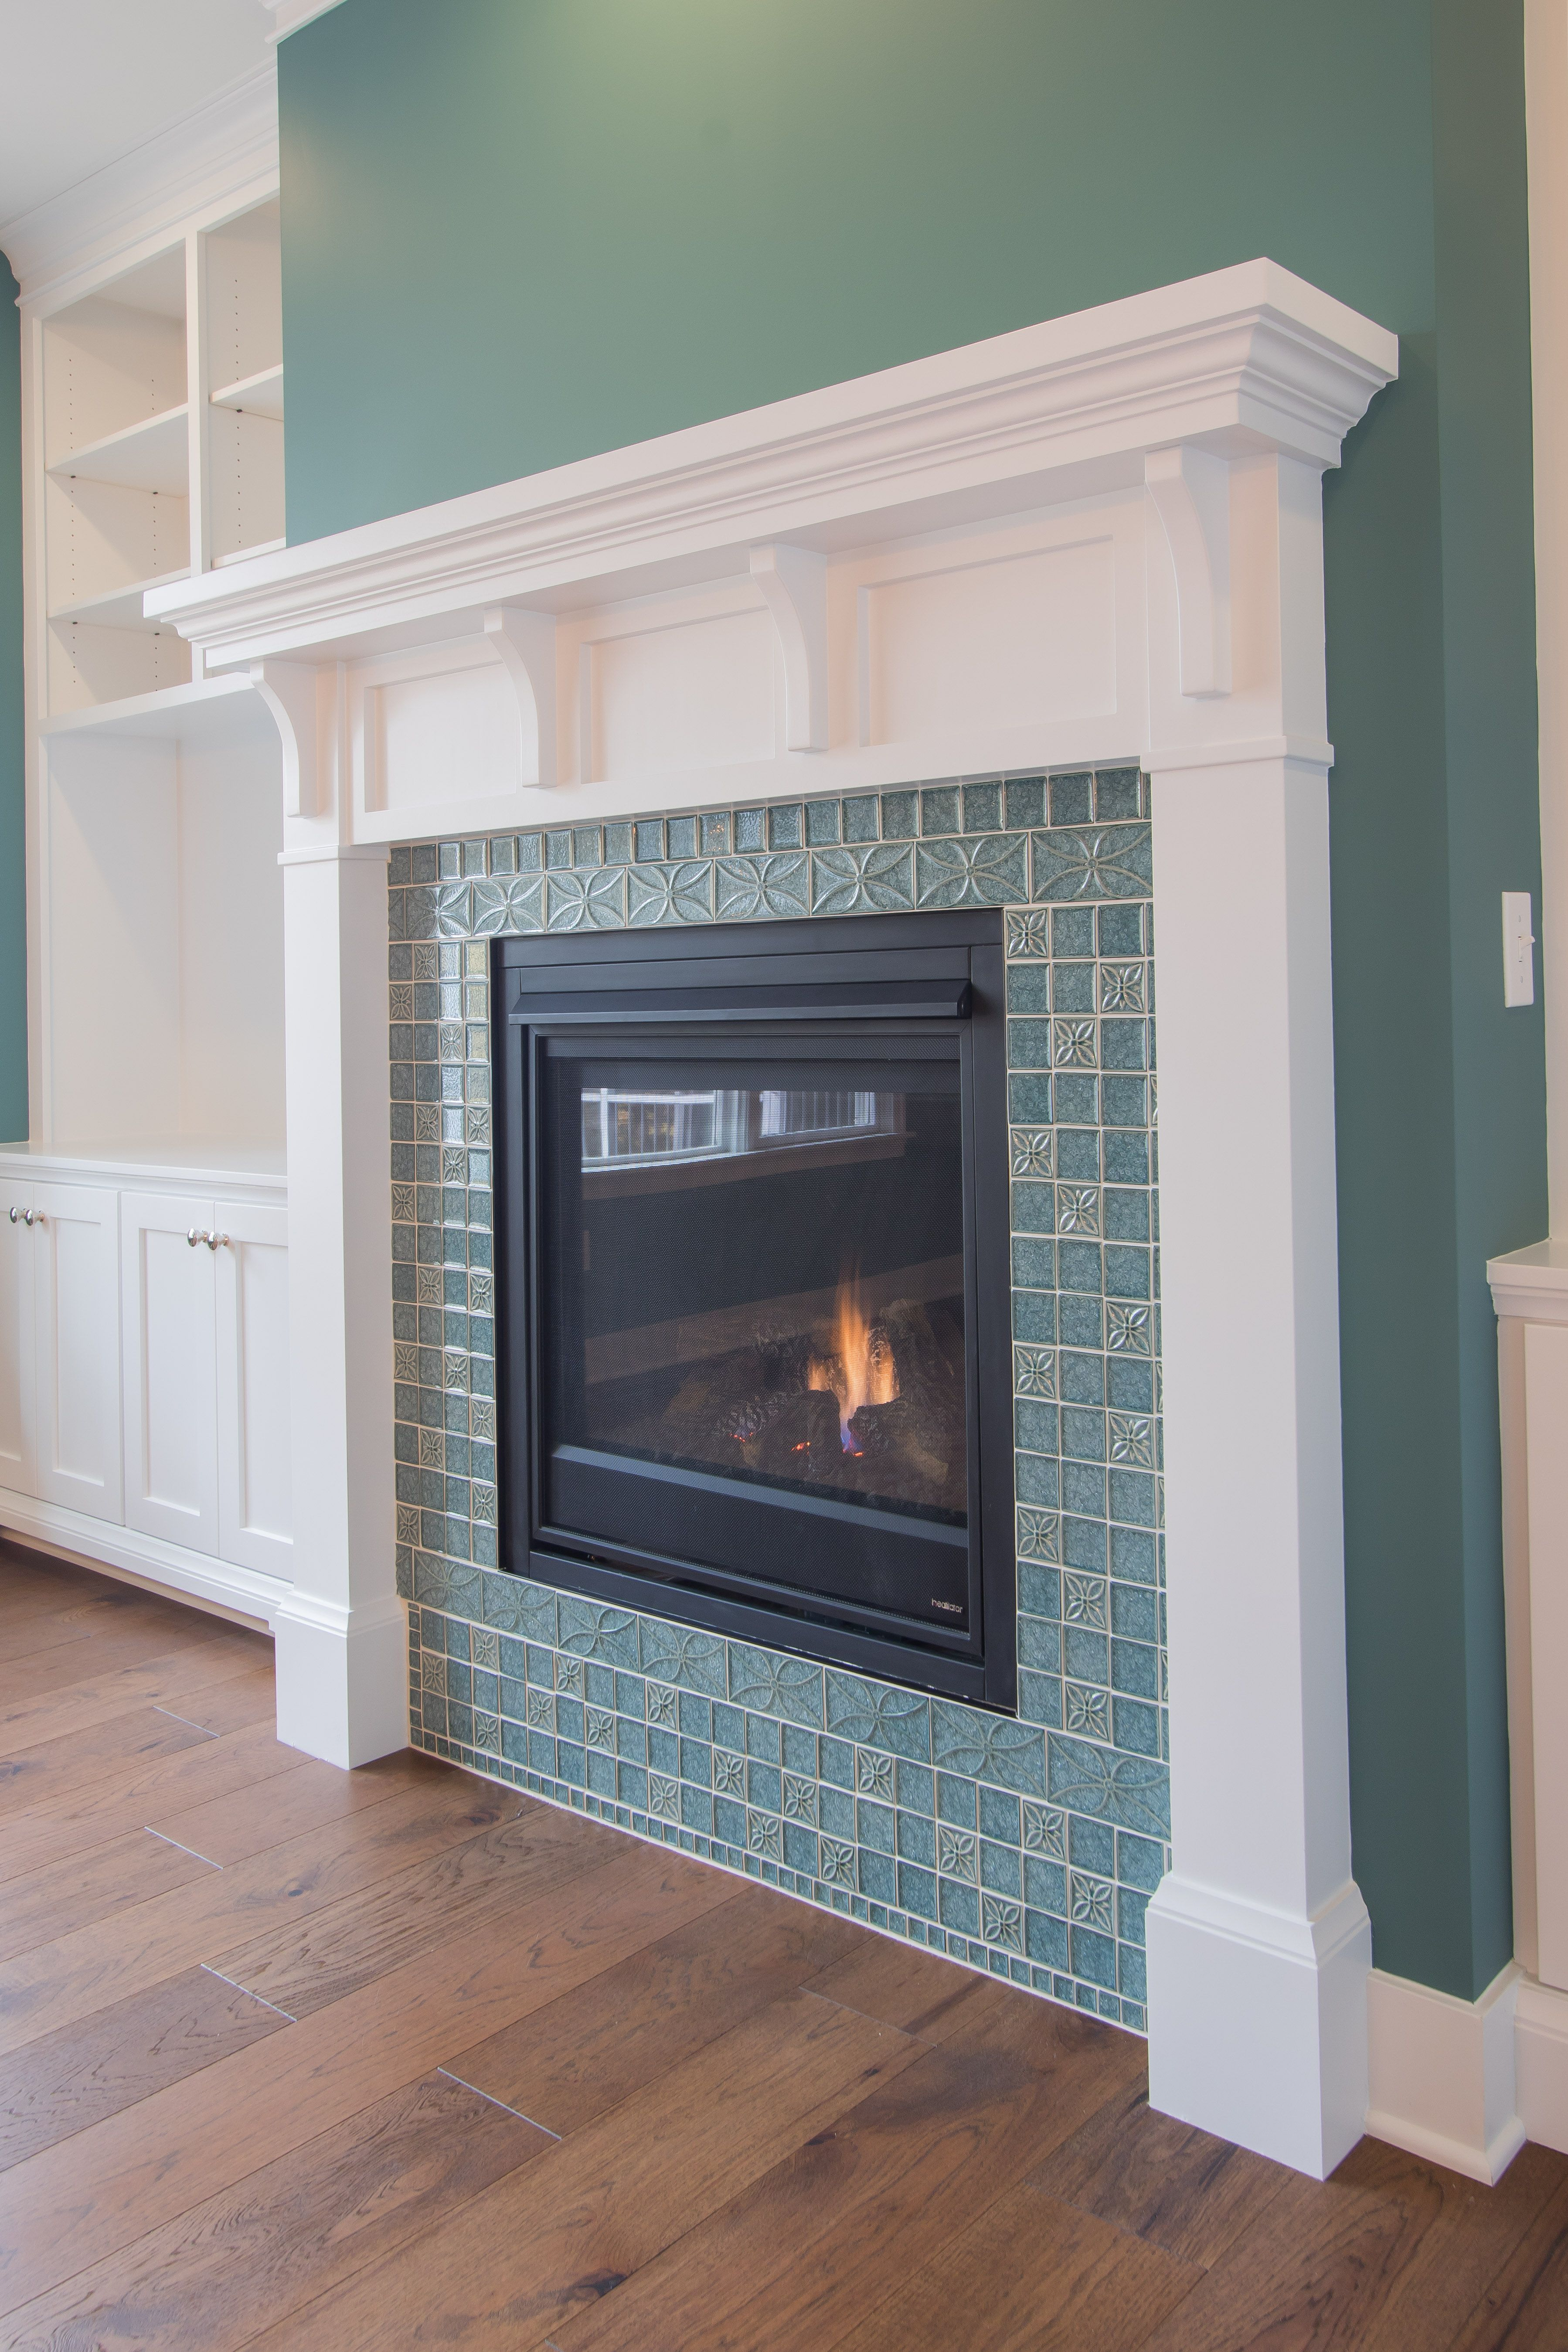 27 Stunning Fireplace Tile Ideas For Your Home Fireplace